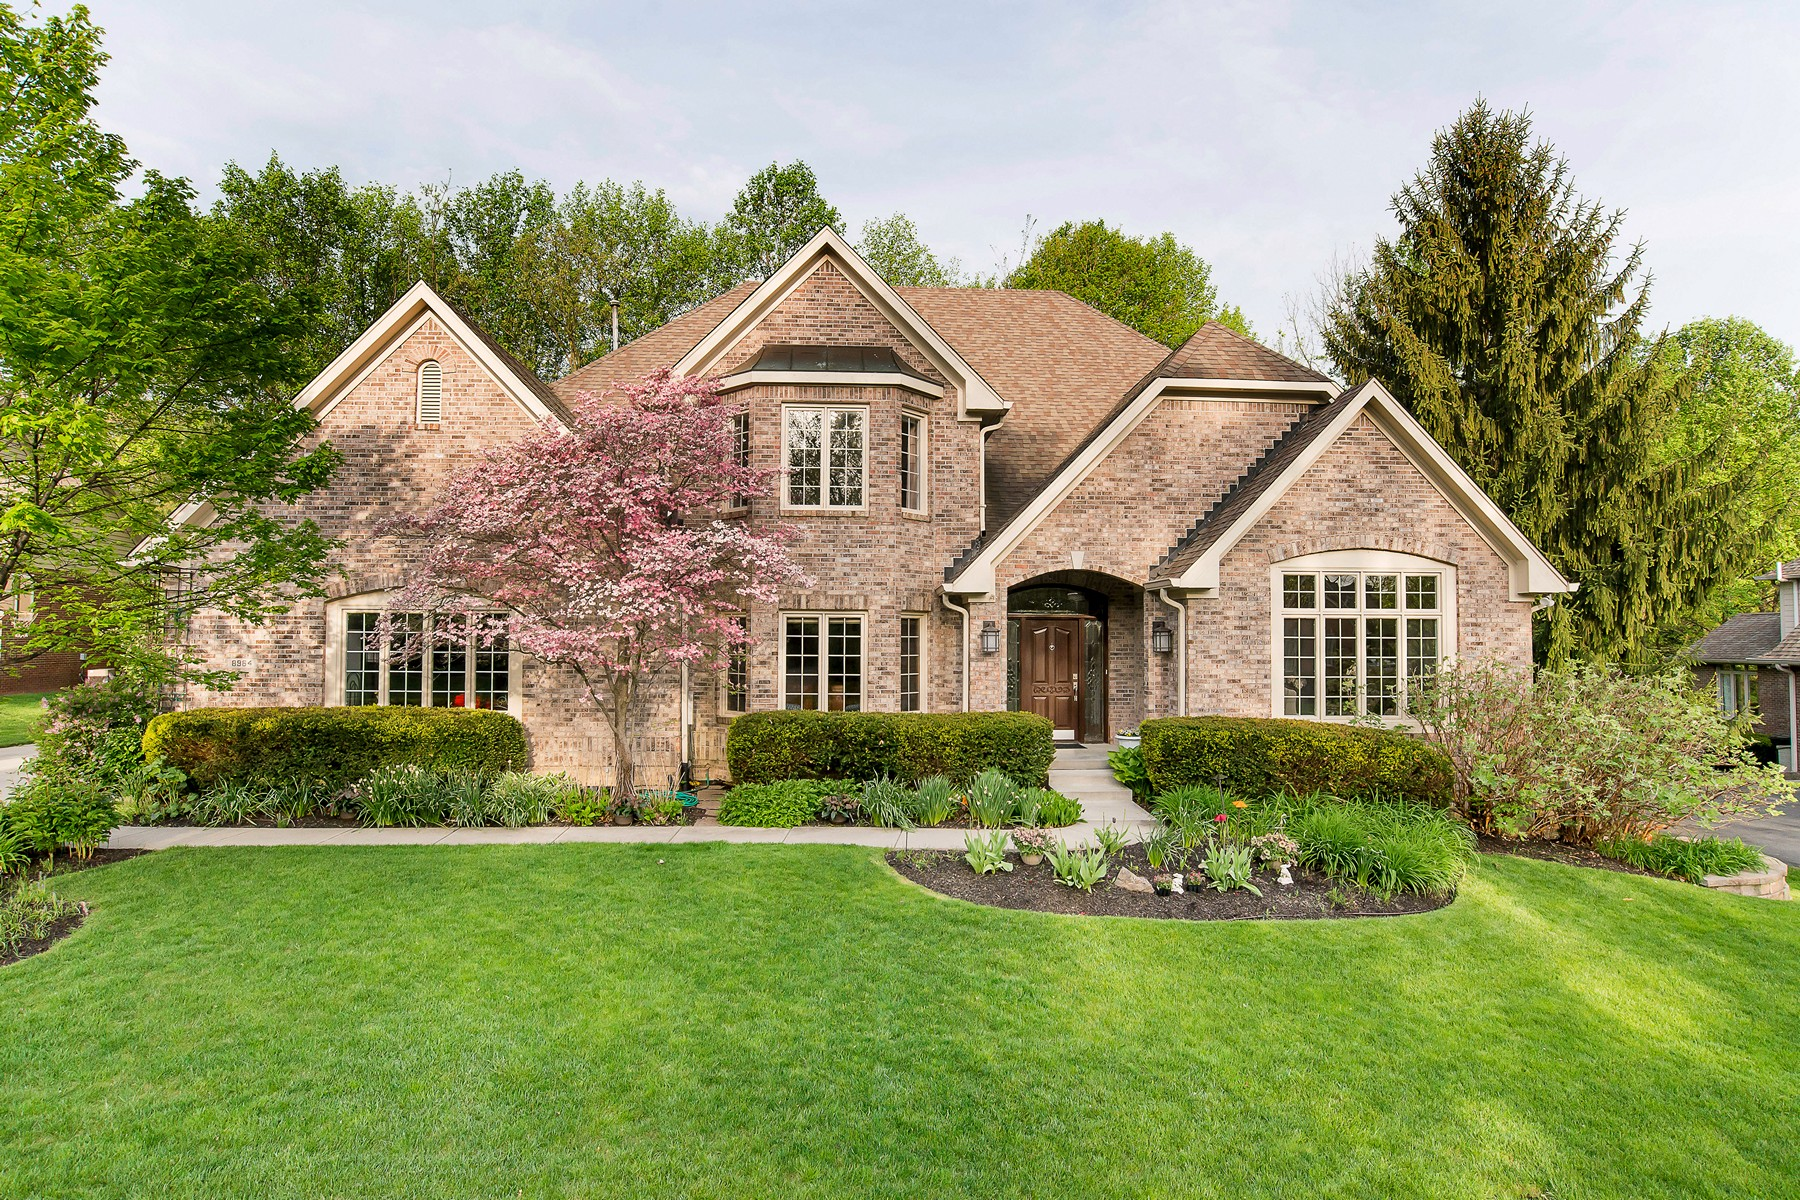 Single Family Home for Sale at Updated Yet Traditional 8964 Bay Breeze Lane Indianapolis, Indiana 46236 United States